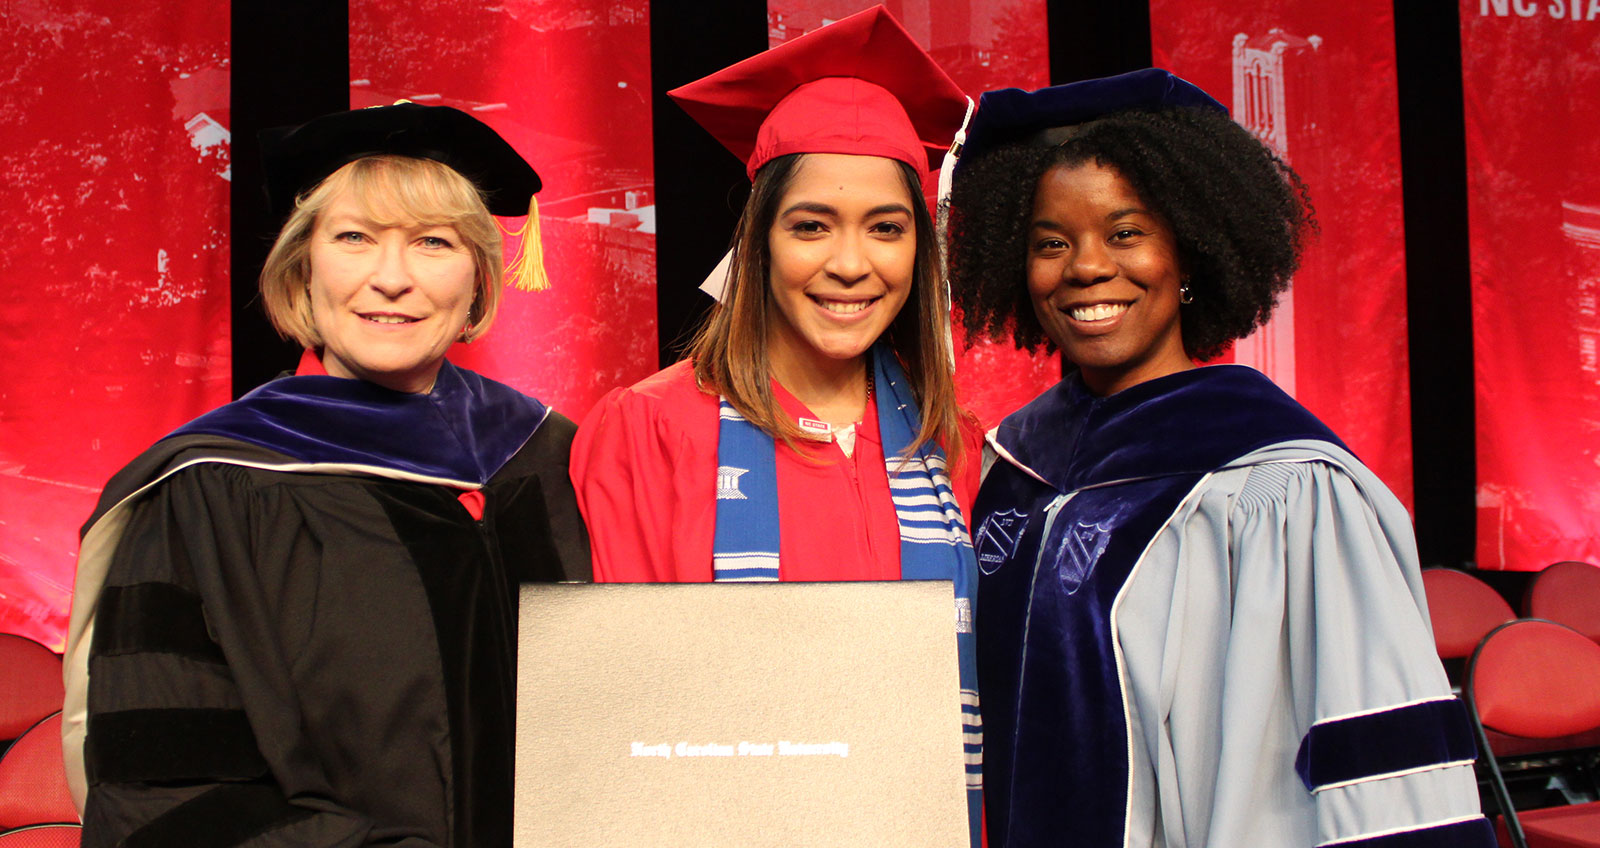 Student commencement speaker Marian Lorin Mercedes with Dean Annette L. Ranft and Associate Dean Tamah Morant